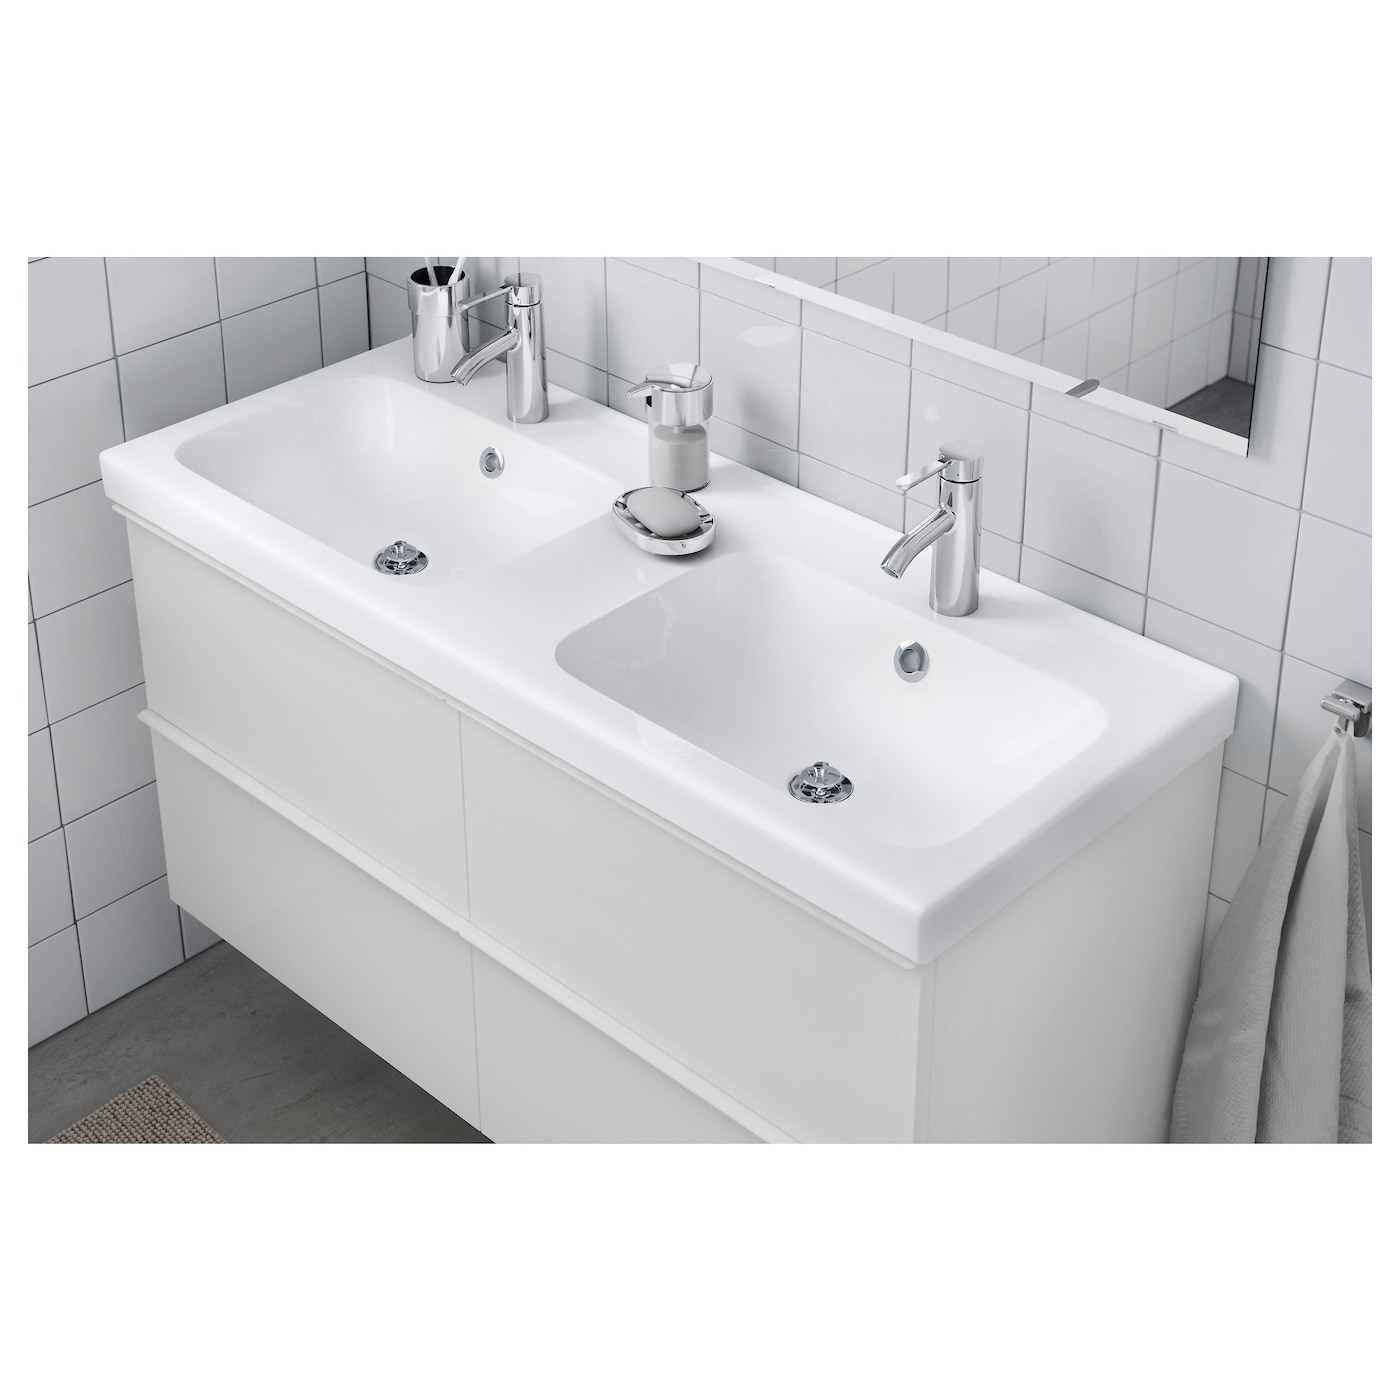 bathroom sink units ikea odensvik wash basin 123 x 49 x 6 cm ikea 16596